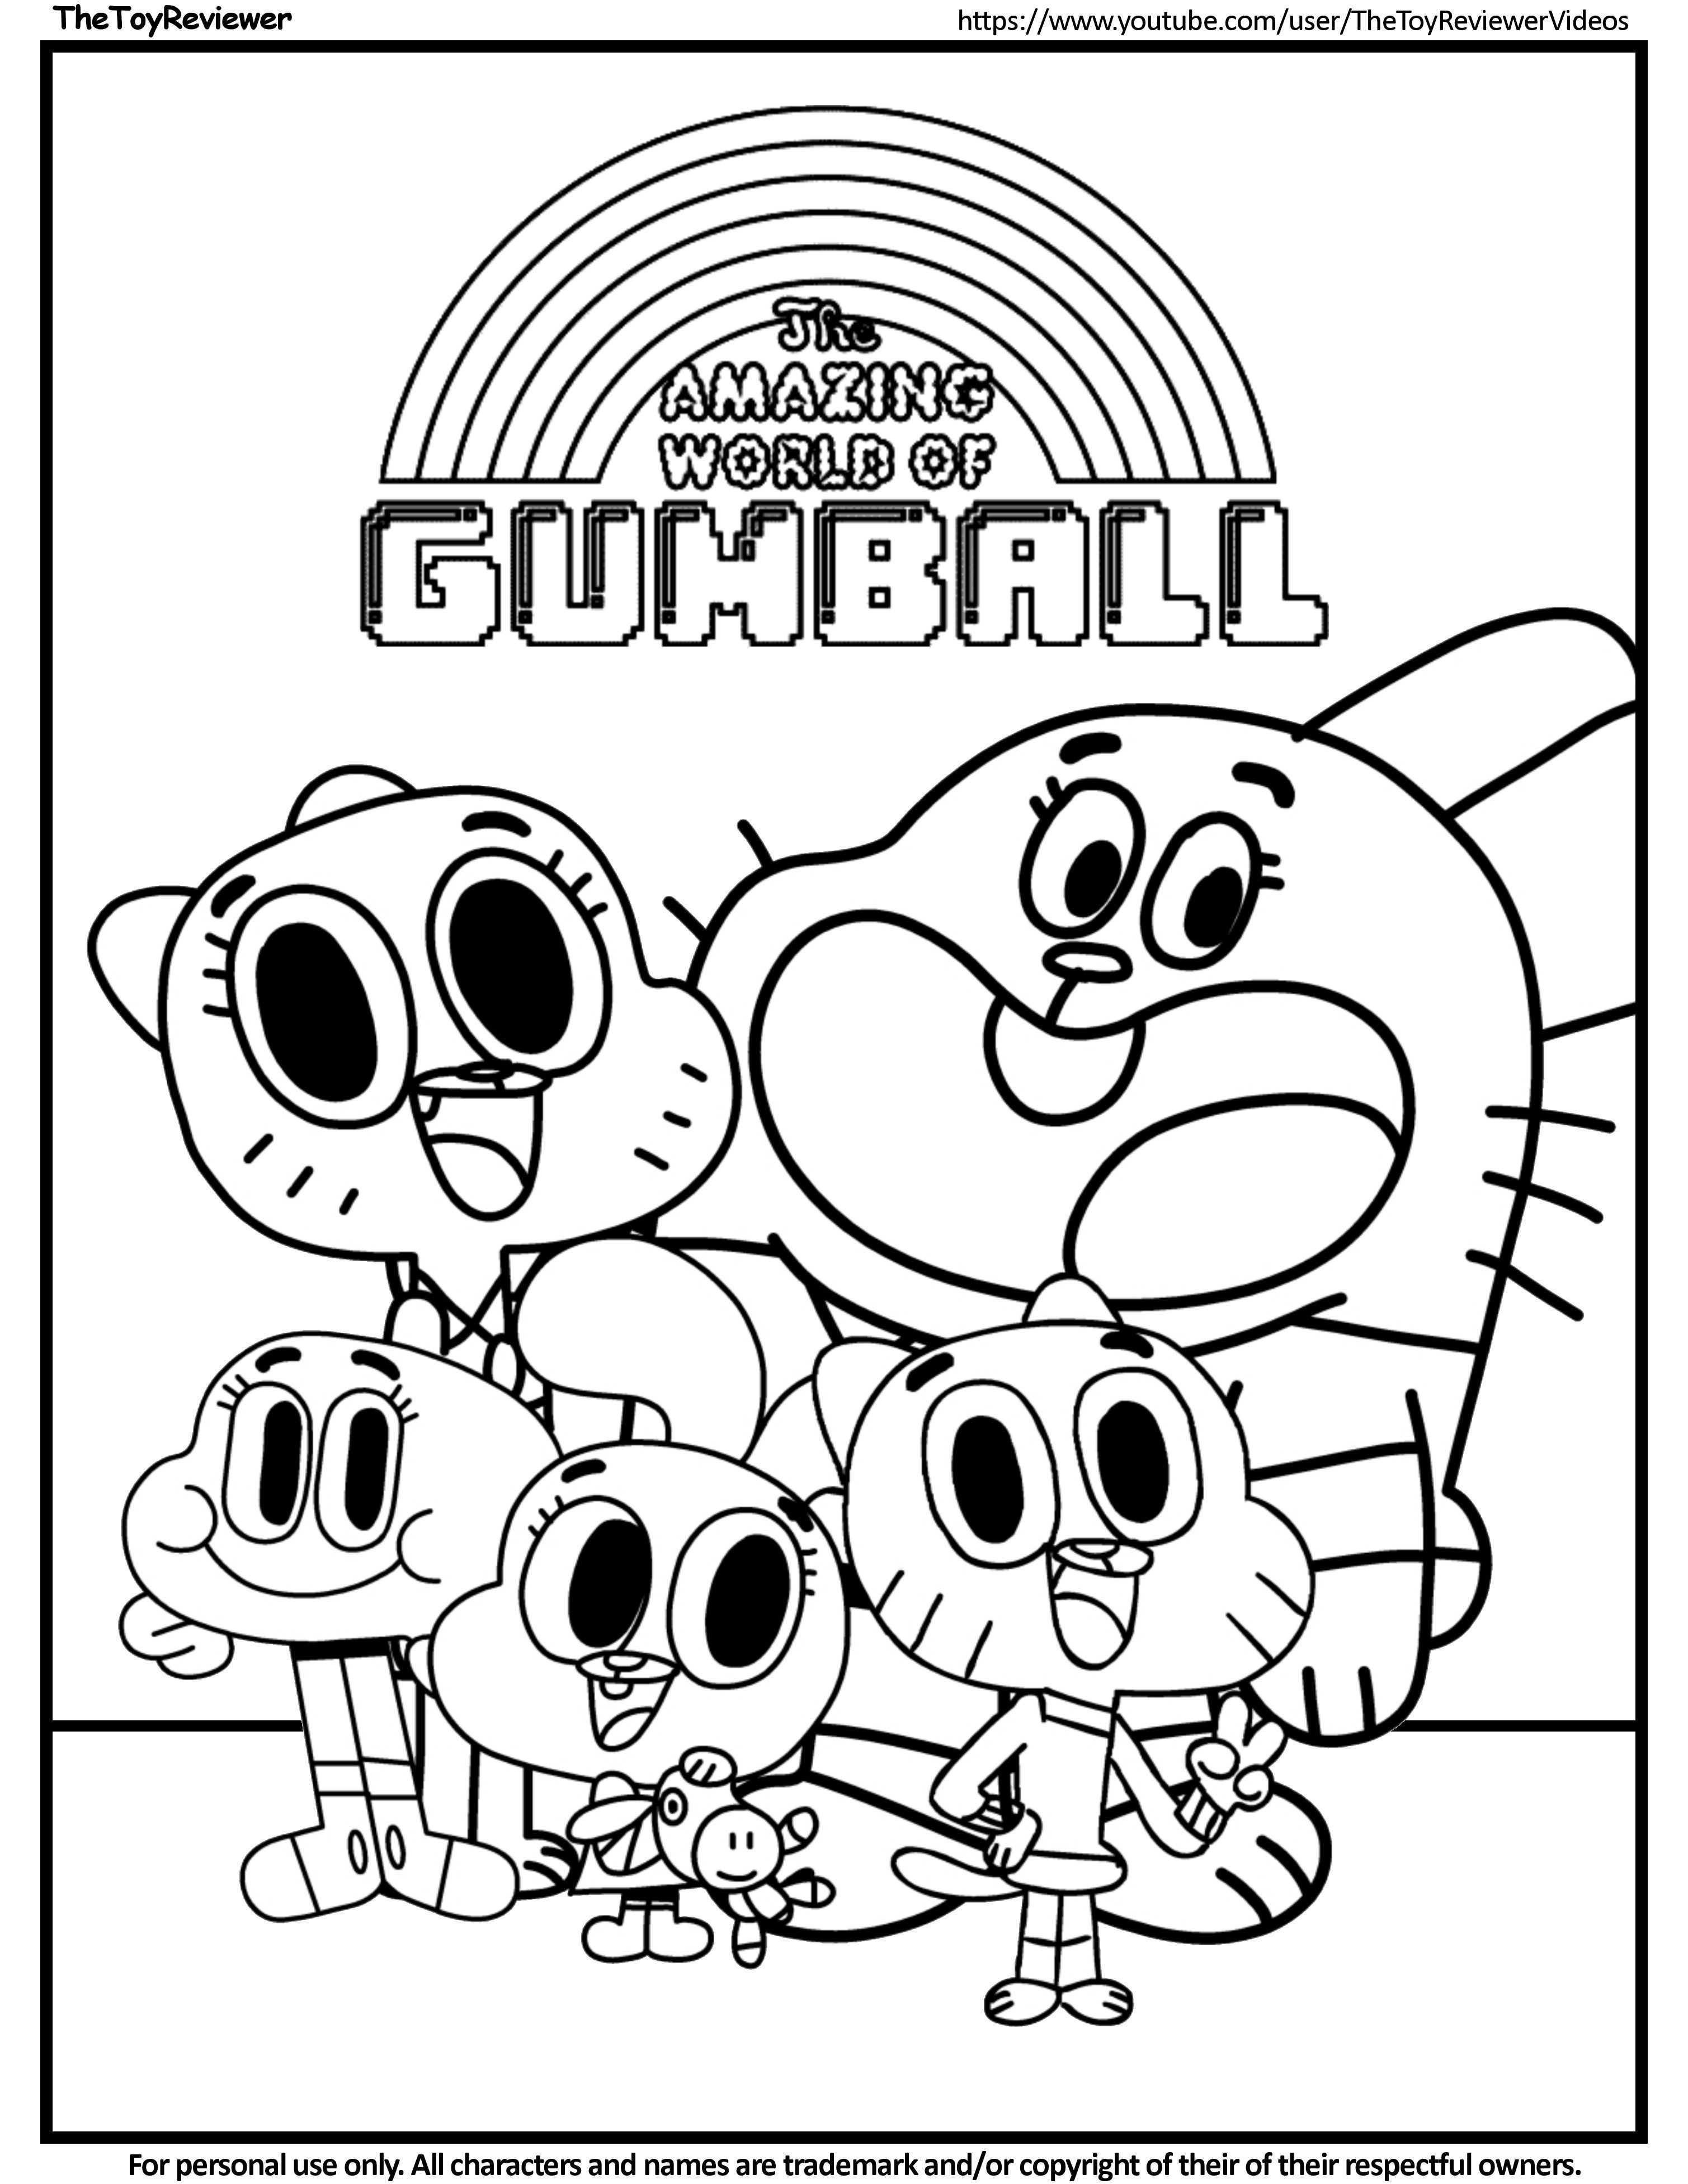 gumball cartoon coloring pages printable the amazing world of gumball coloring pages on pages cartoon coloring gumball